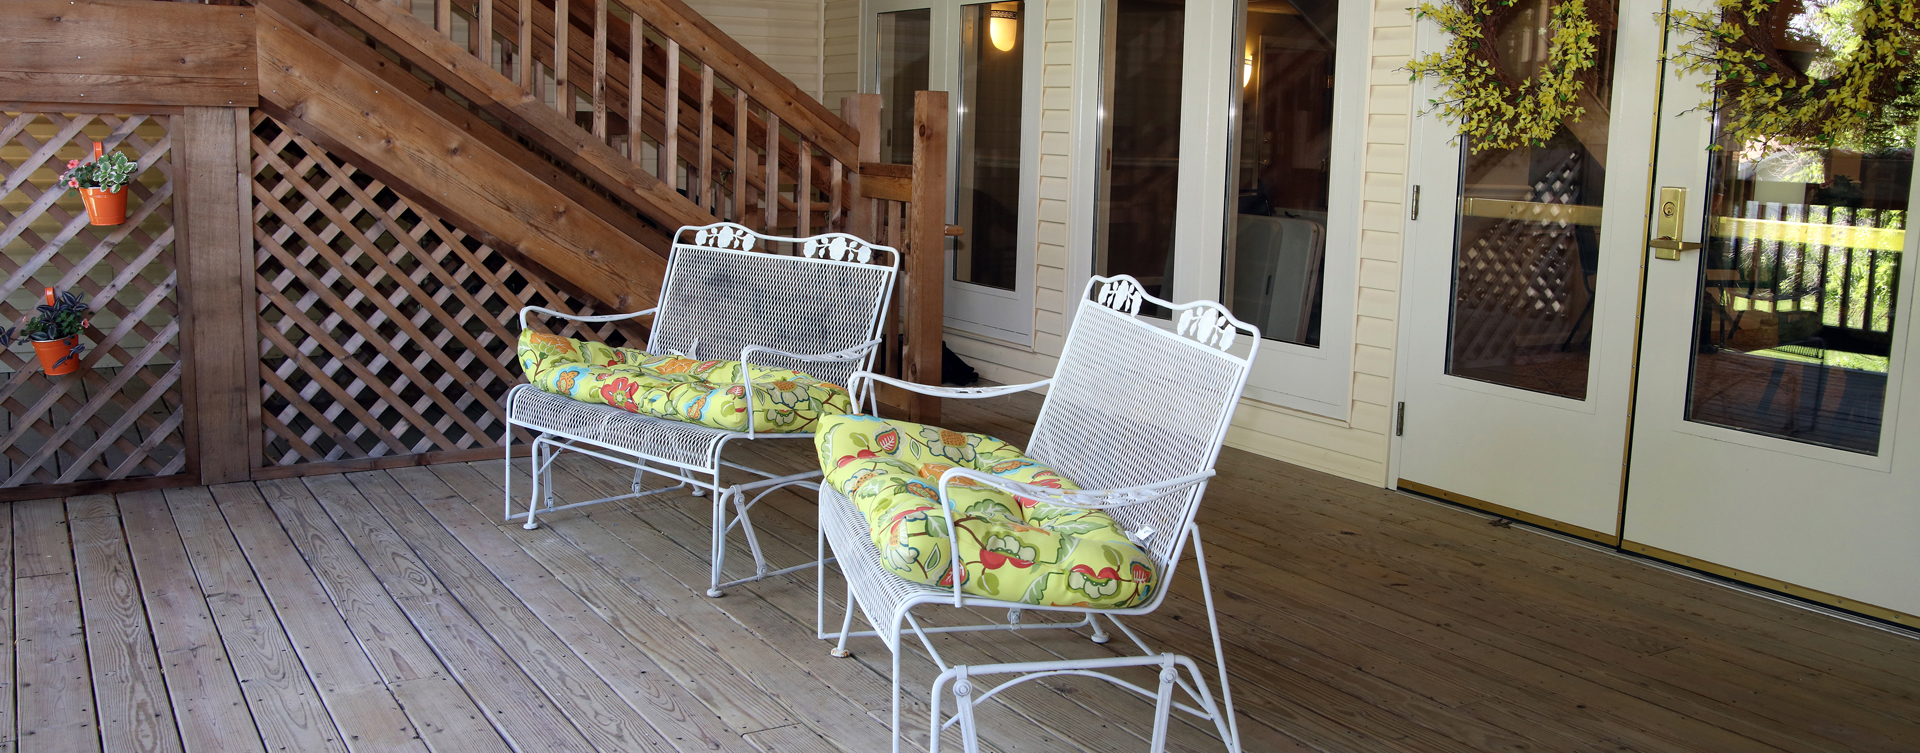 Enjoy the outdoors in a whole new light by stepping onto our back deck at Bickford of Rockford